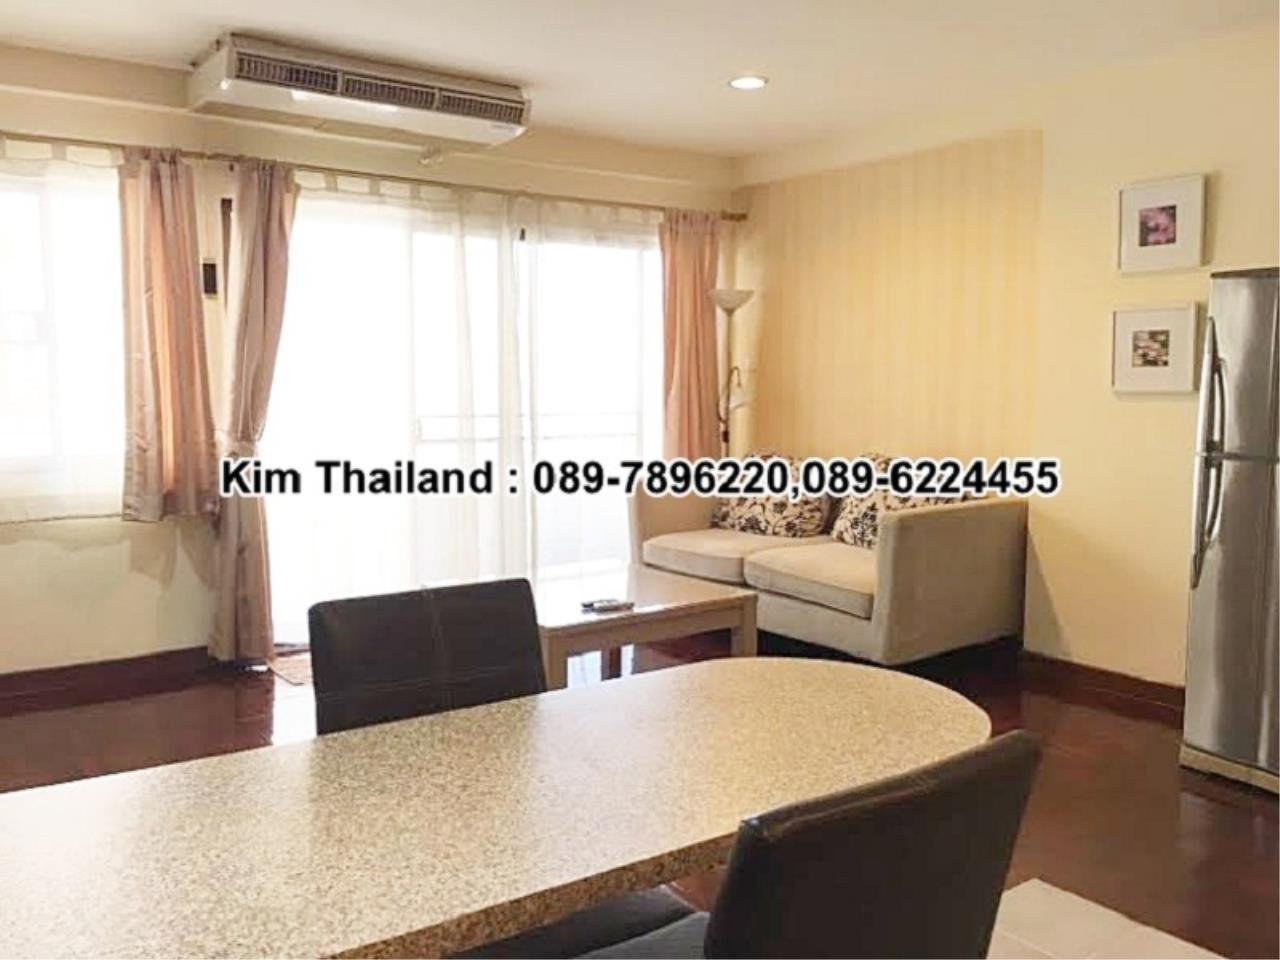 BKKcondorental Agency's For rent, Condo Saranjai Mansion. Area 63 sq.m. 1 bedroom. Rent 20,000baht/month 11